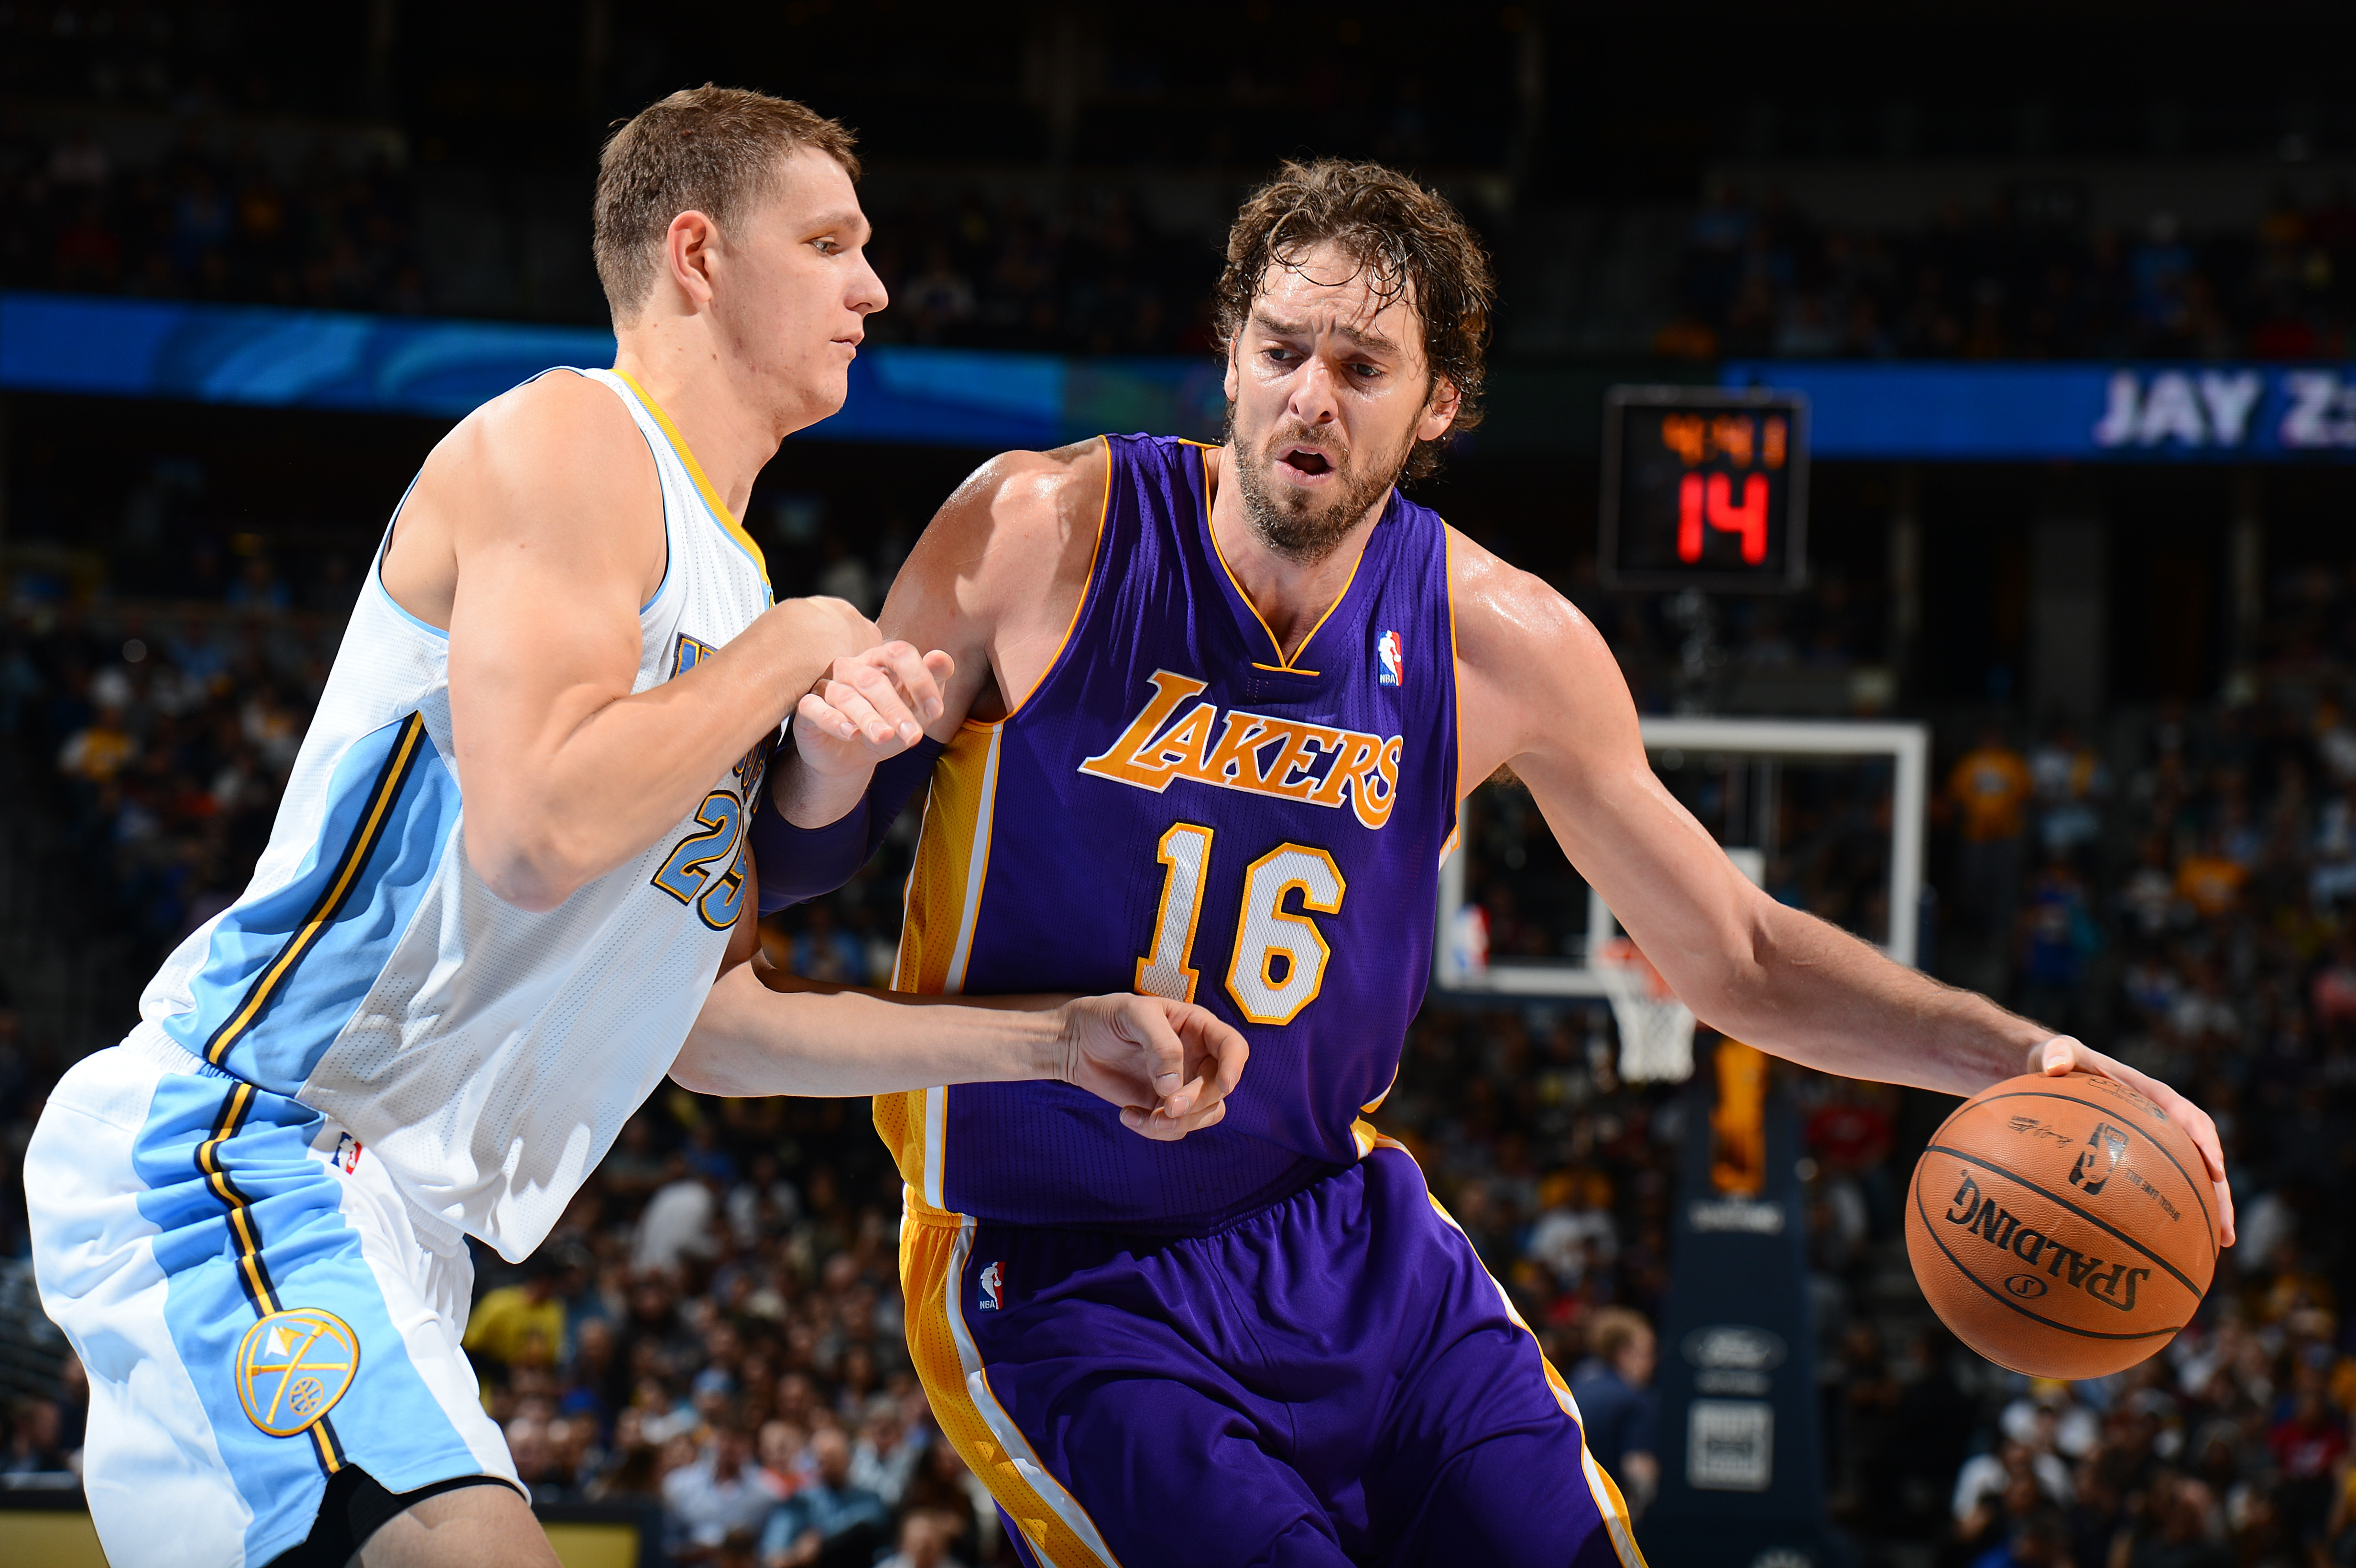 Photos  Lakers vs. Nuggets 11 13 13  730f07356